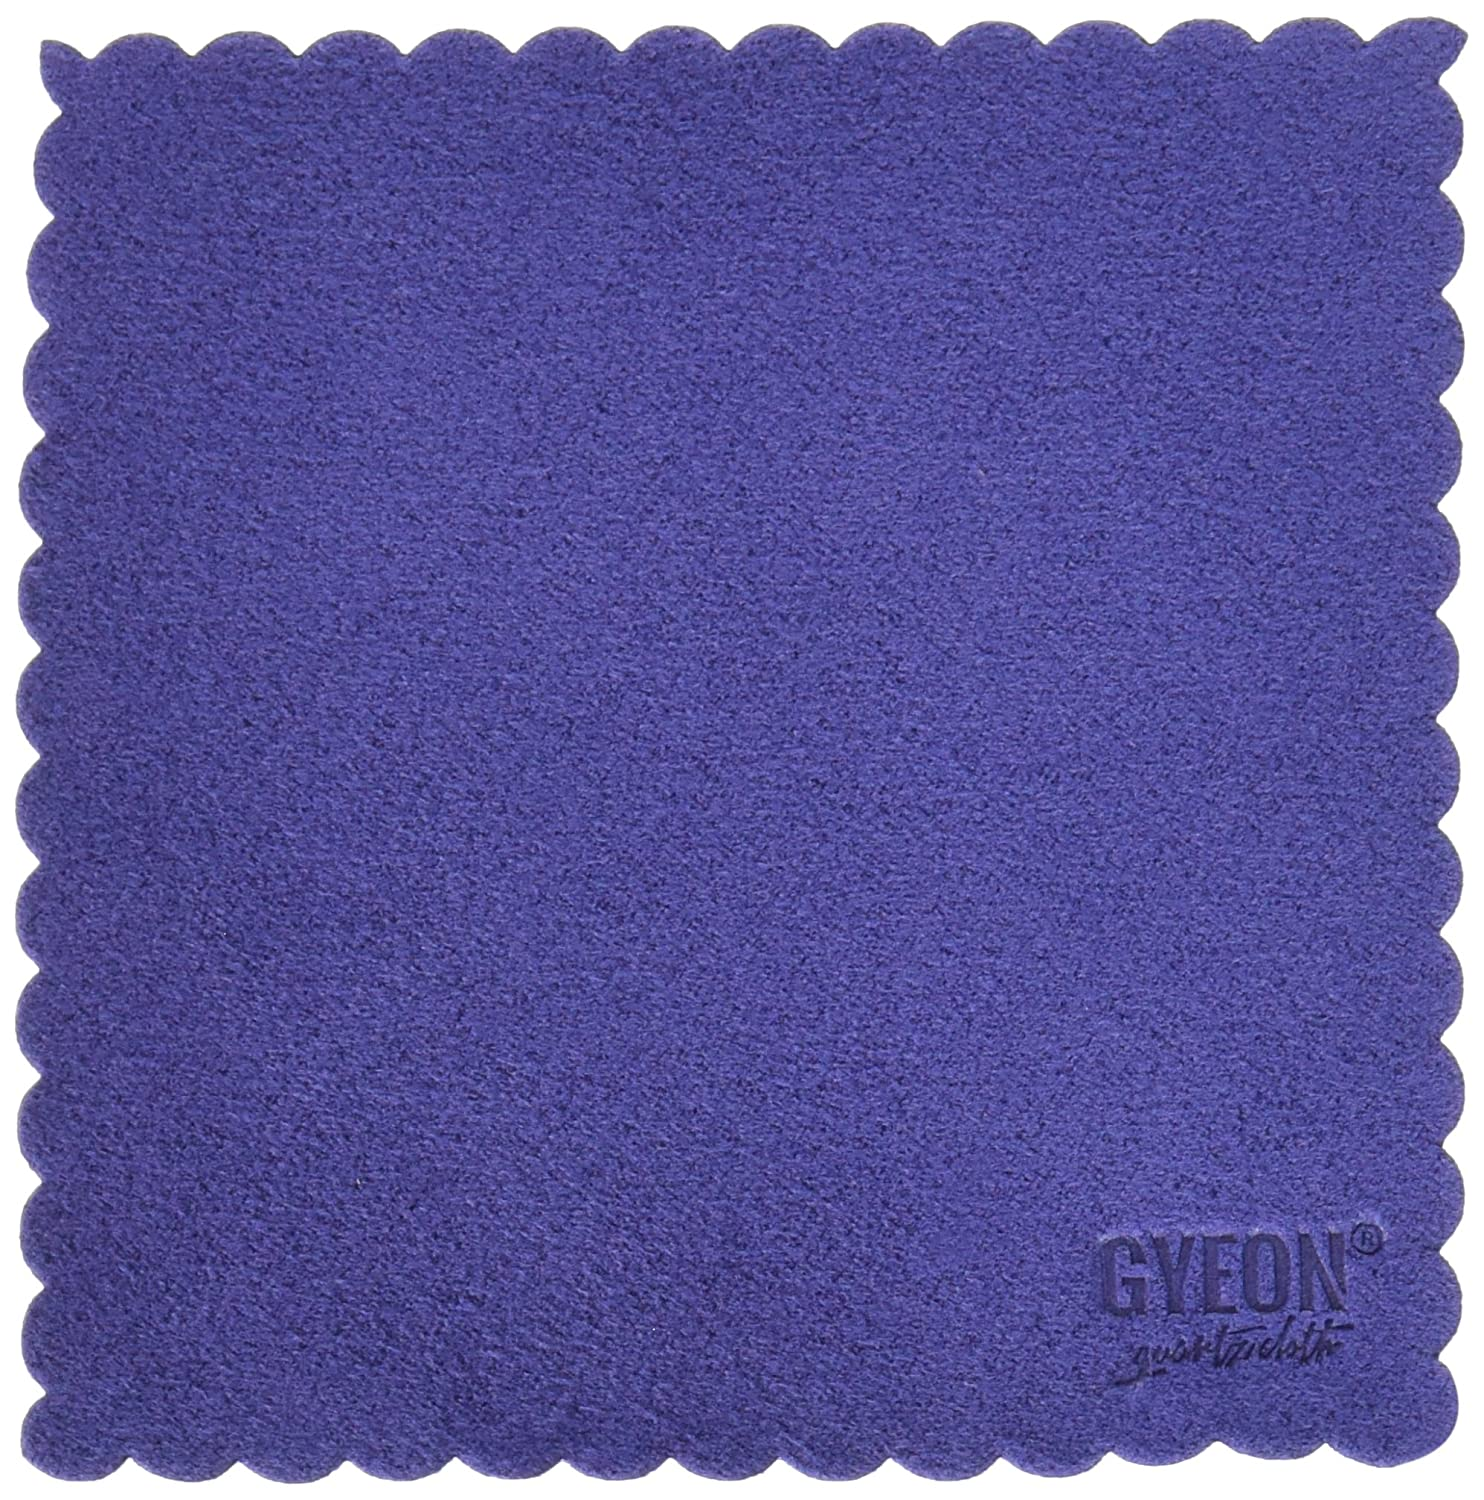 Gyeon Microfiber Suede Cloth 4' x 4' (10 pcs) FBA_GY-6003